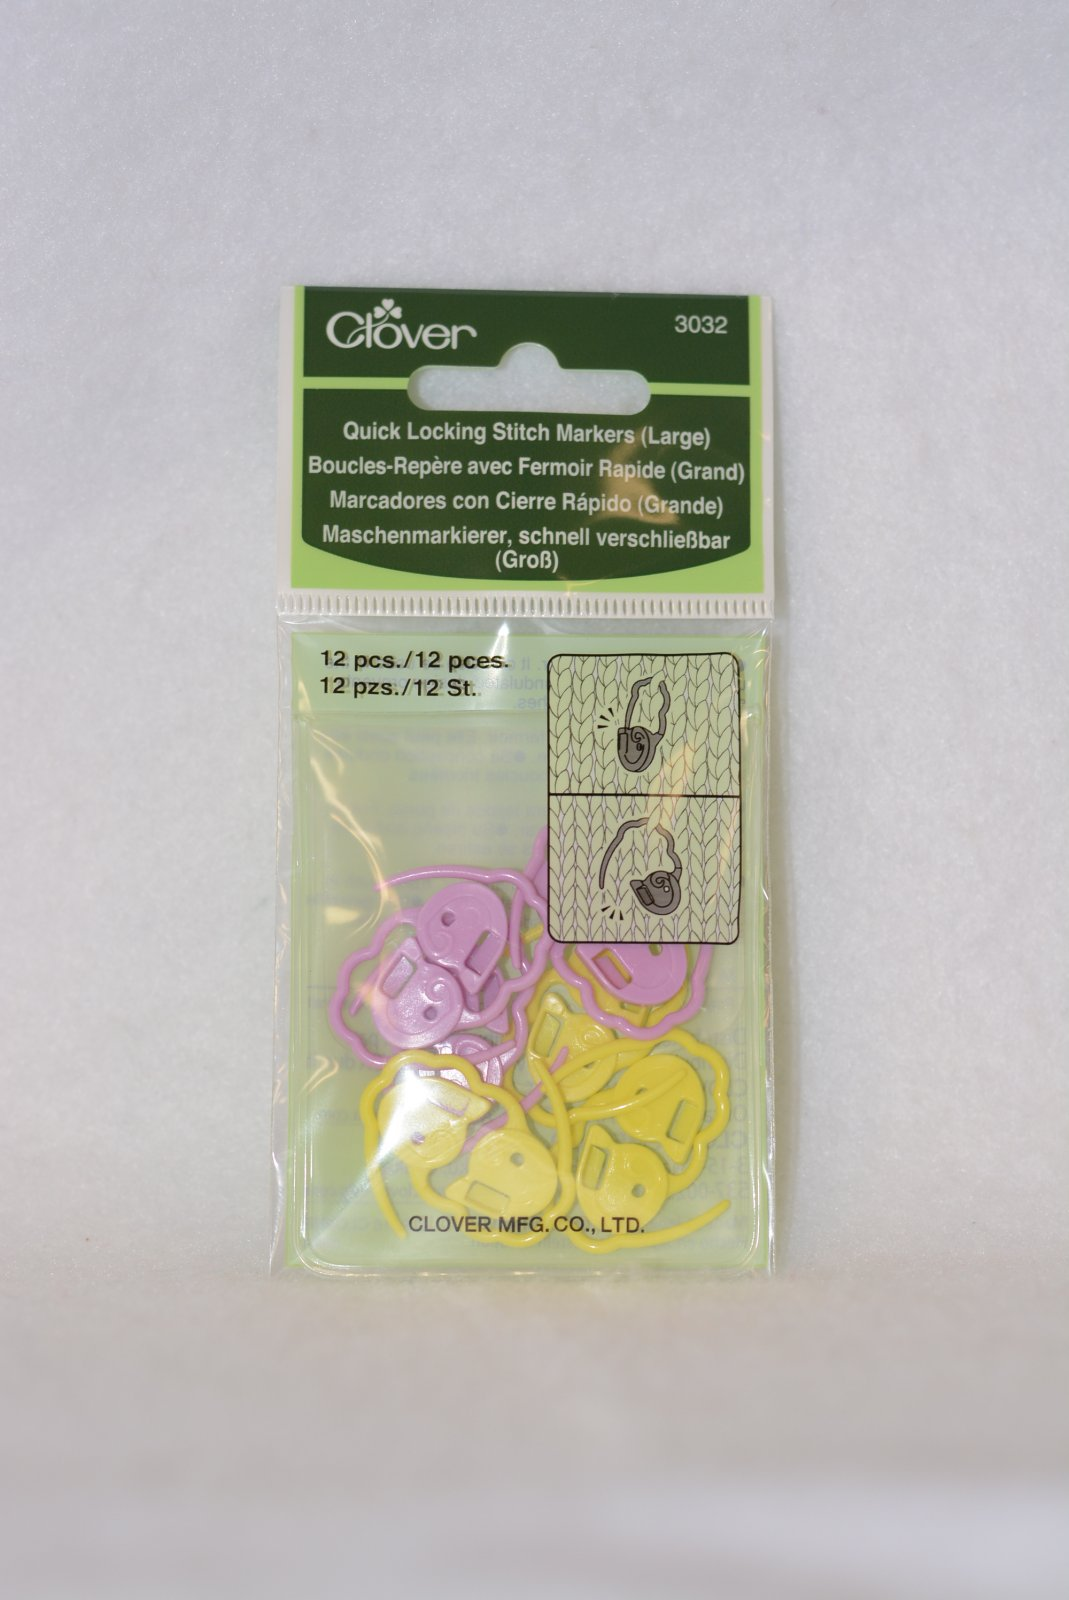 Quick Locking Stitch Markers (Lg.) by Clover - 3032